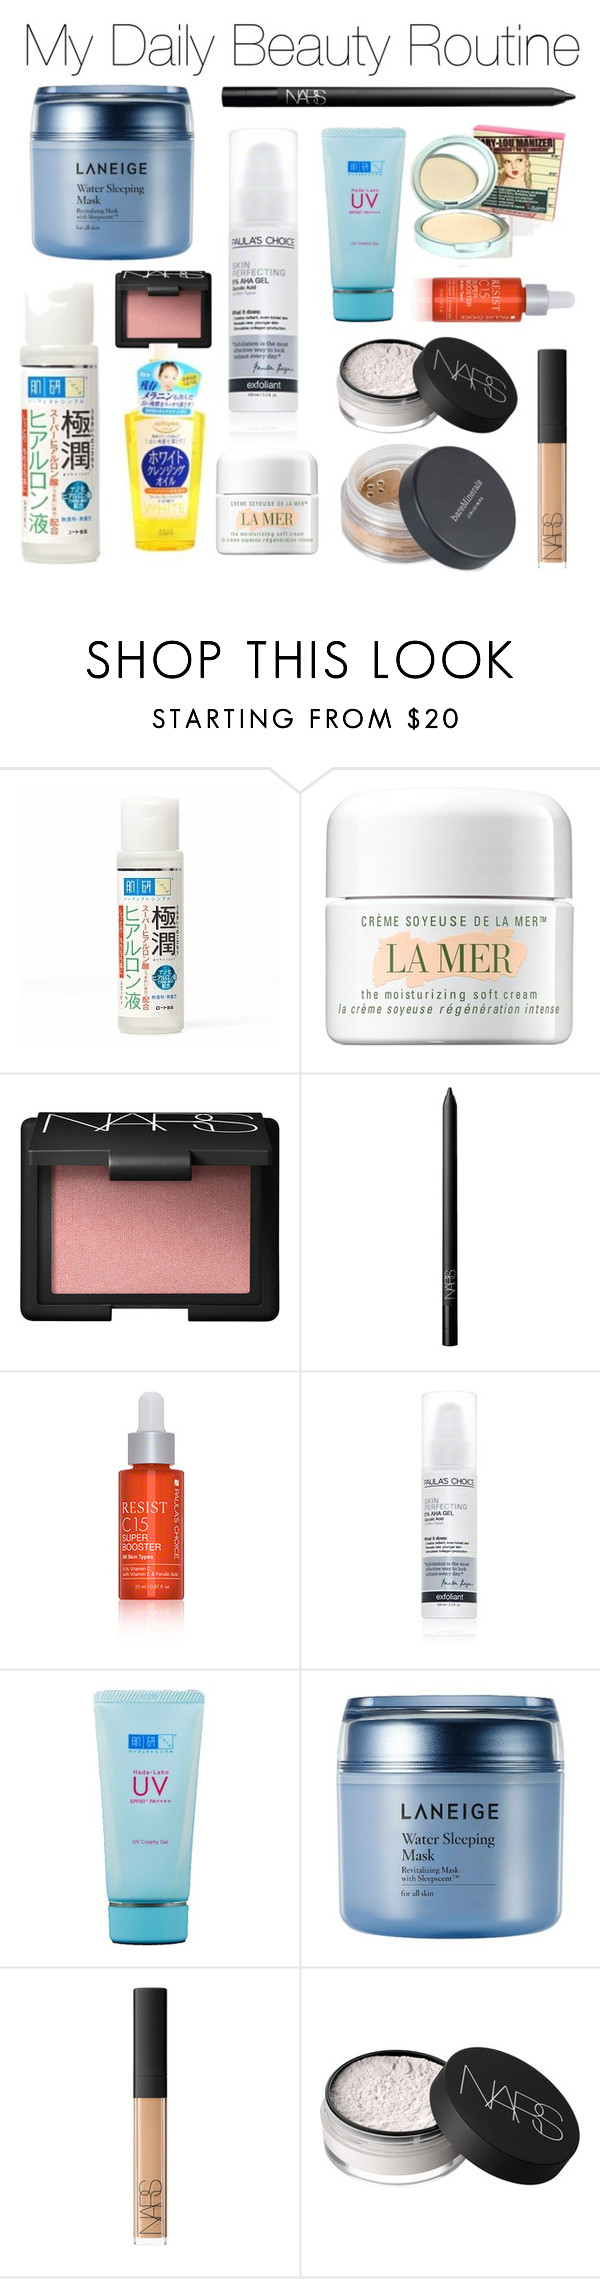 """""""Untitled #438"""" by jess ❤ liked on Polyvore featuring beauty, Kose, La Mer, NARS Cosmetics, Paula's Choice, Laneige, Bare Escentuals and TheBalm"""